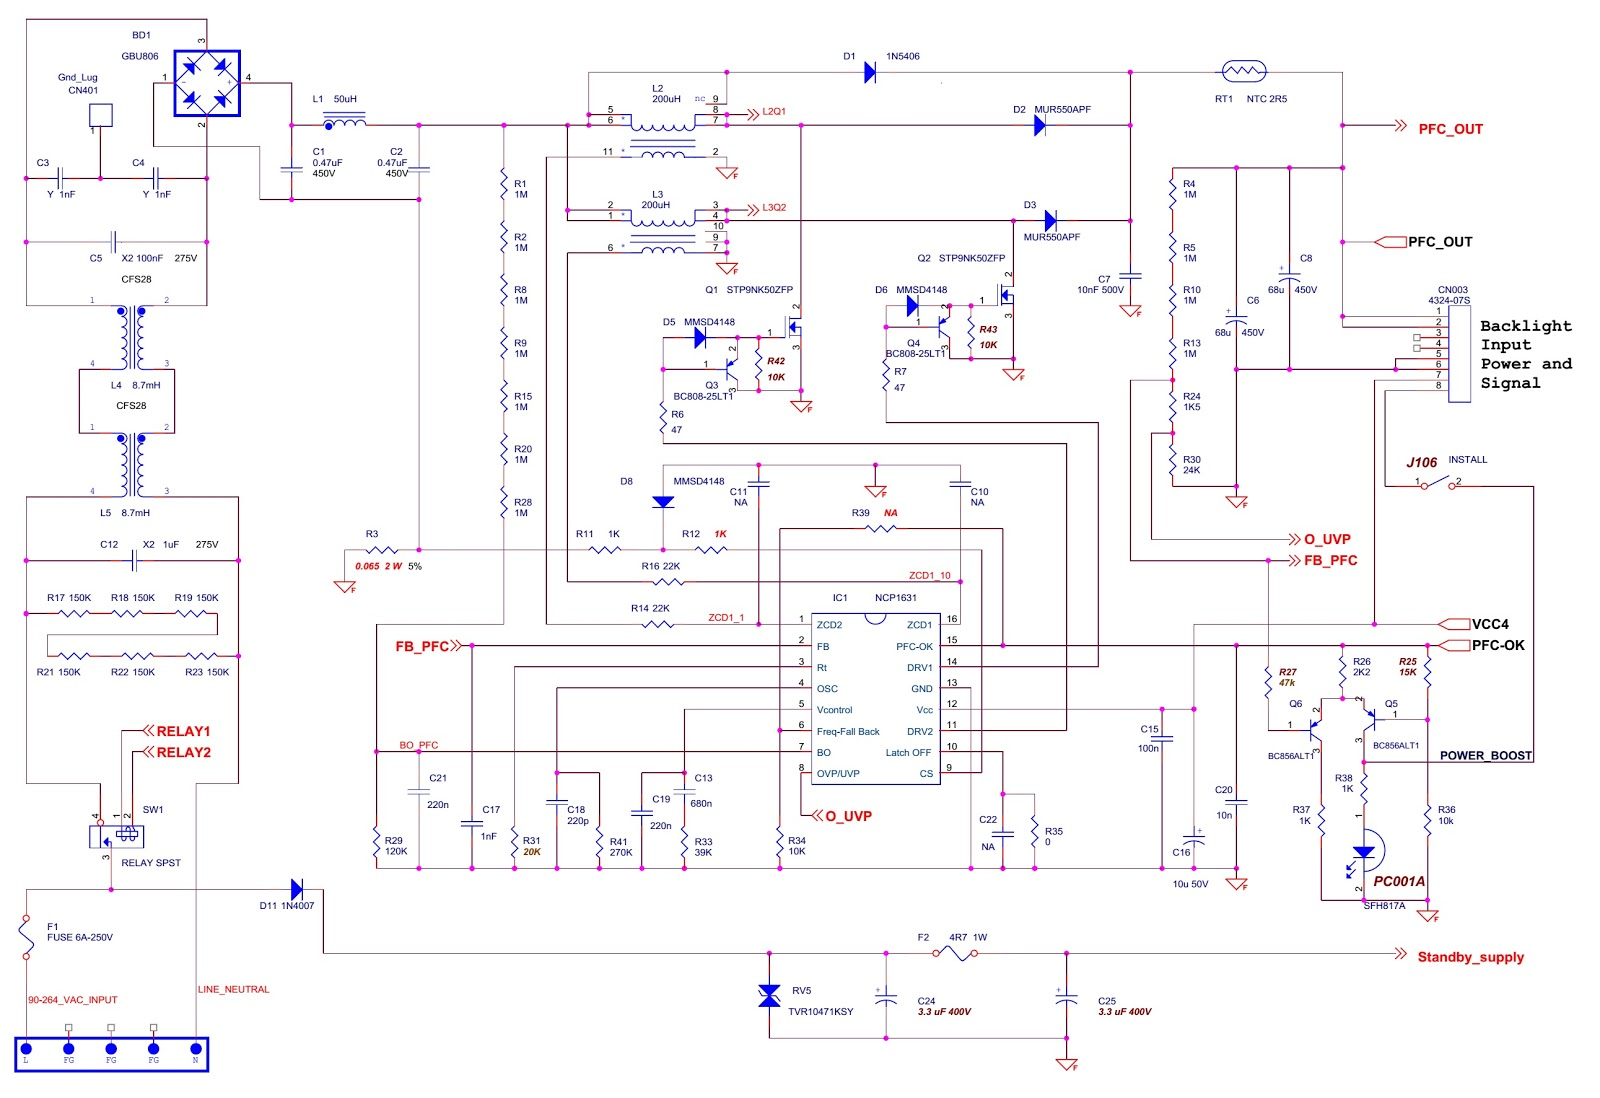 46 inch lcd tv smps schematic [ 1600 x 1098 Pixel ]